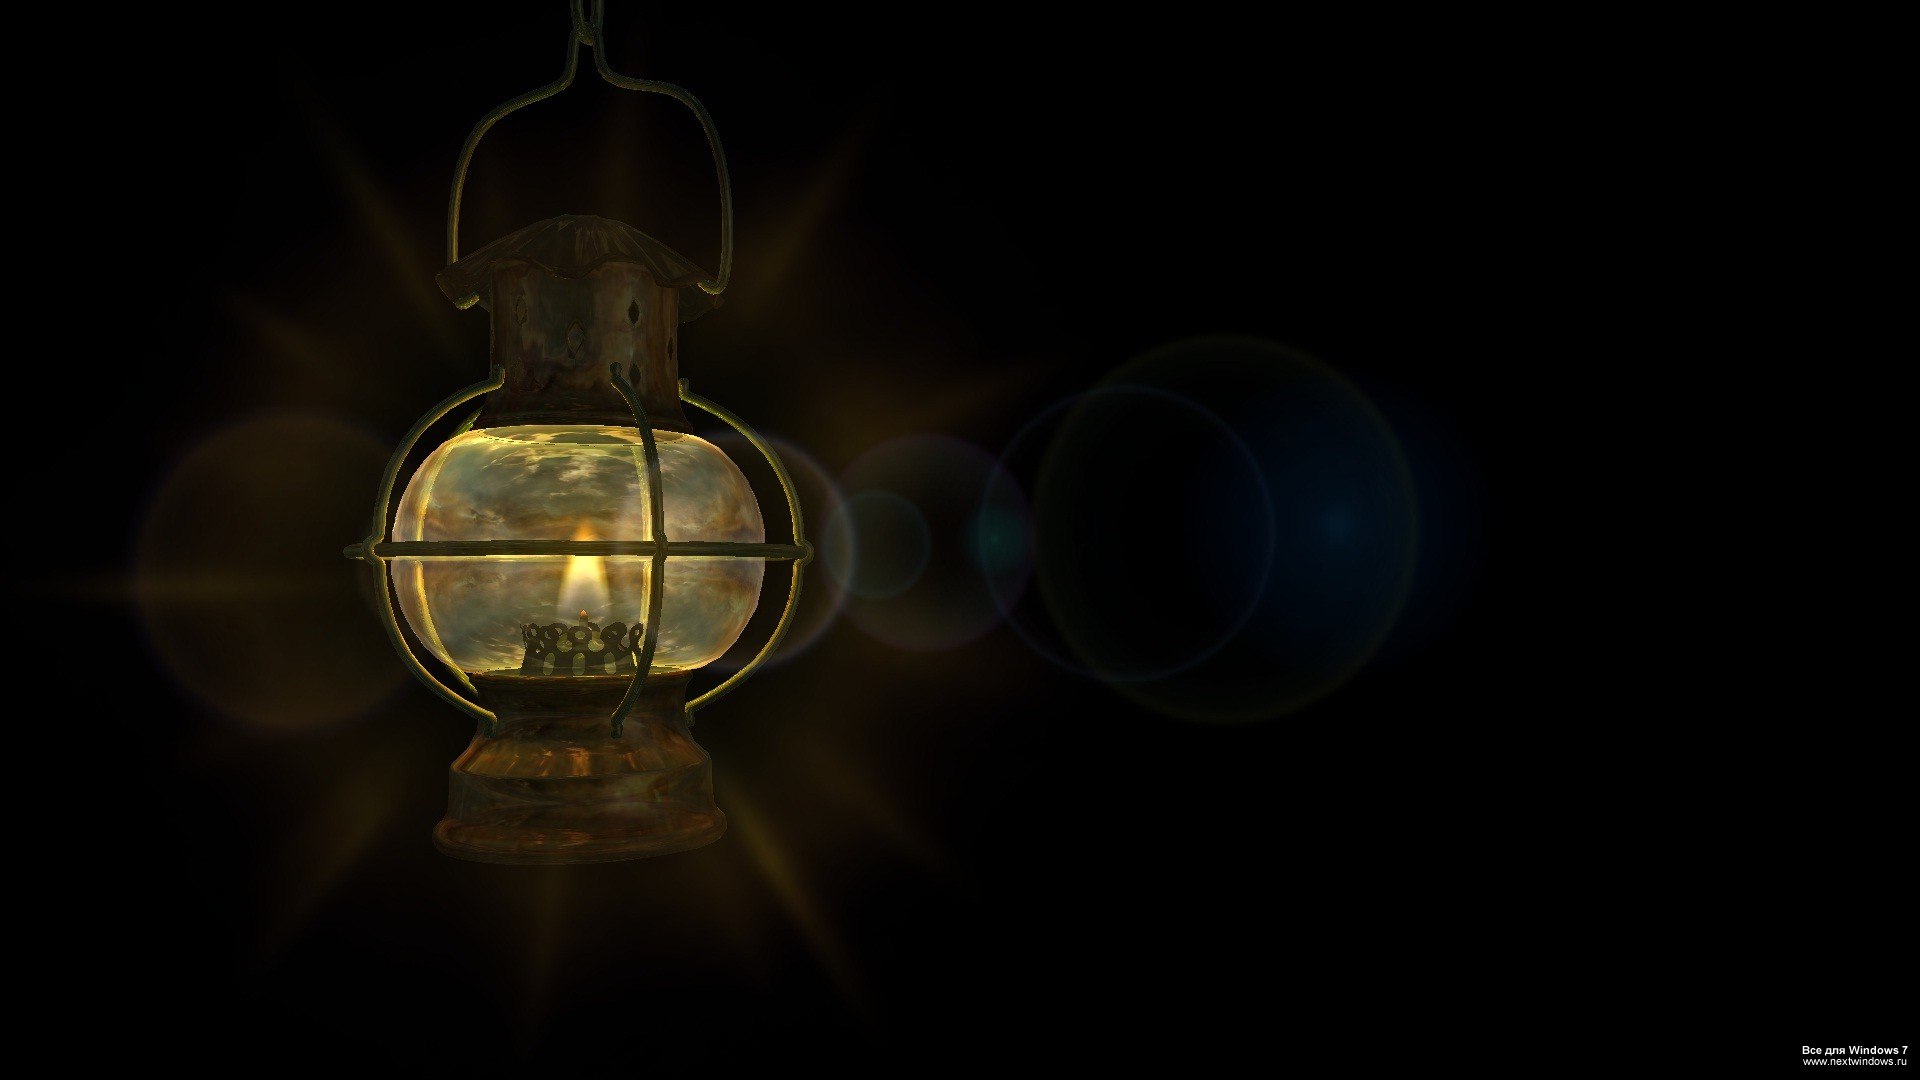 lantern screensaver screensavers themes 1920x1080 1920x1080